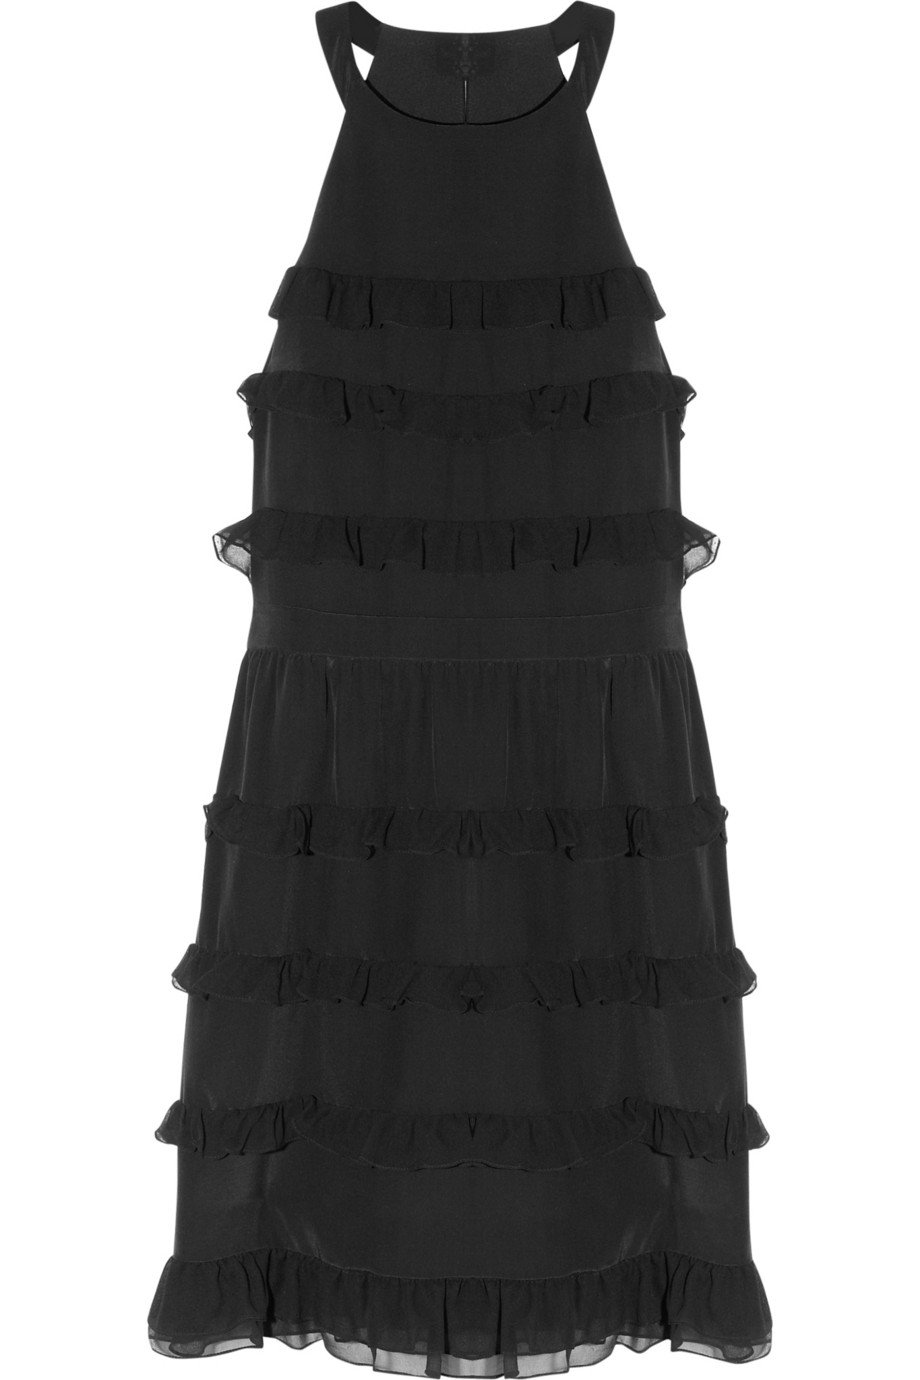 Ruffled silk mini dress by Tibi